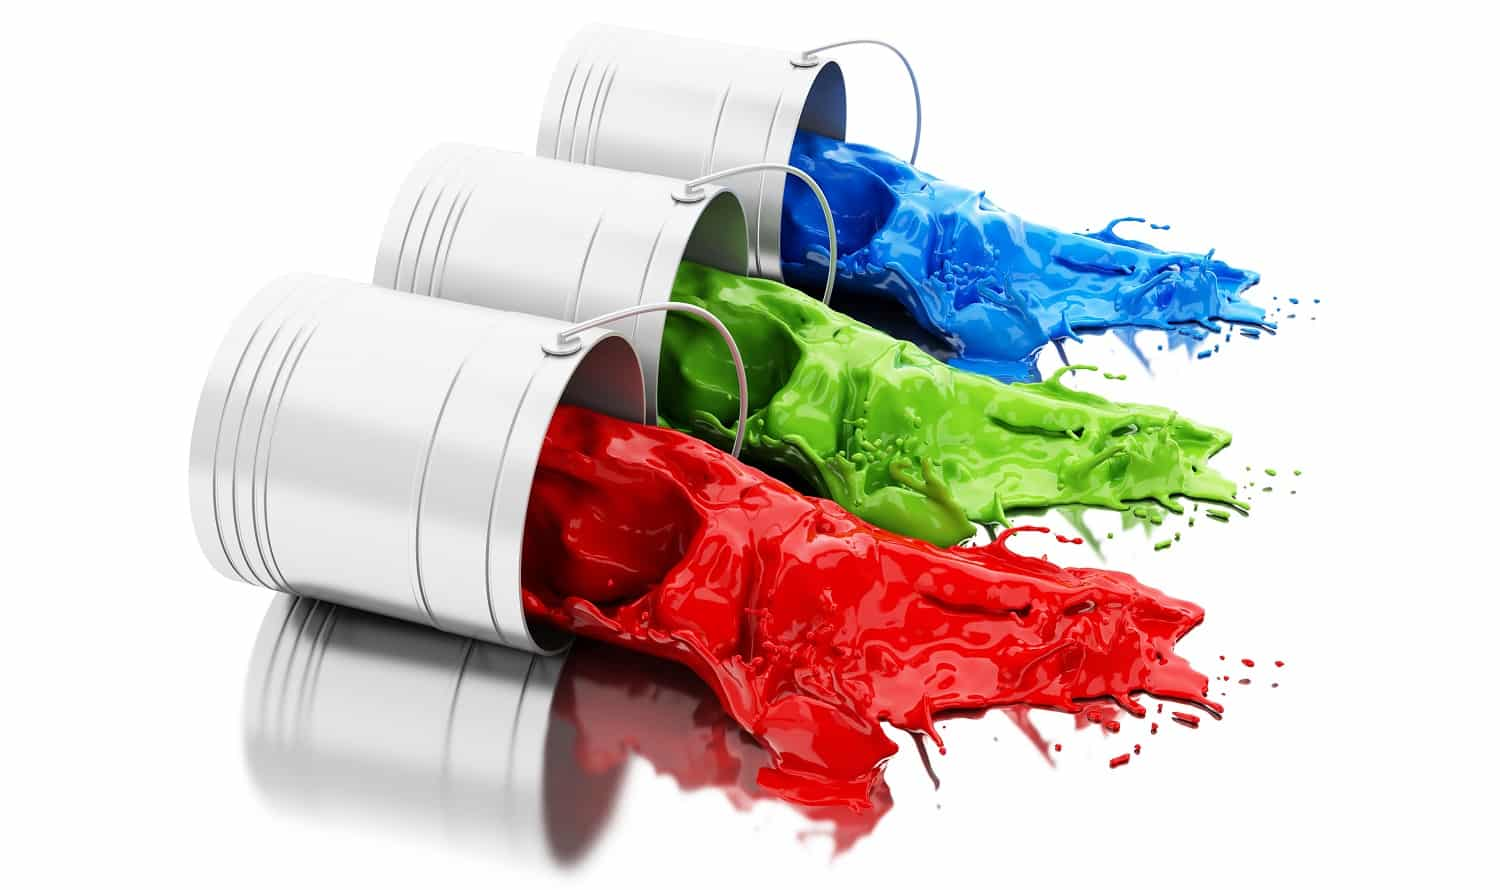 3d illustration. Colorful paint splashing out of cans. Isolated white background